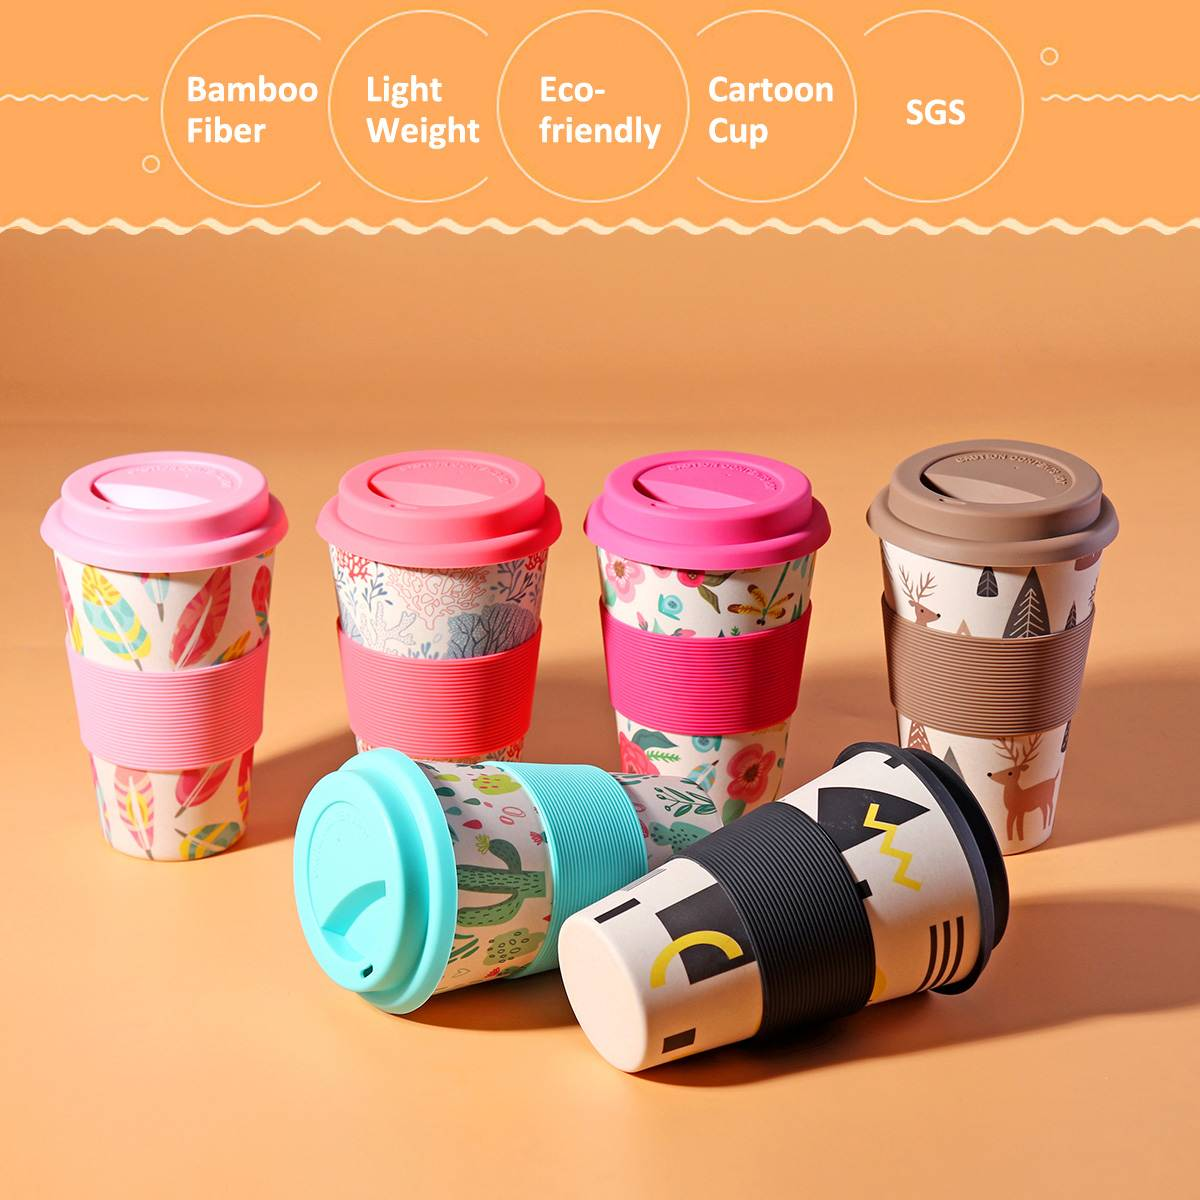 400ml Portable Reusable Bamboo Fiber Silicone Cups